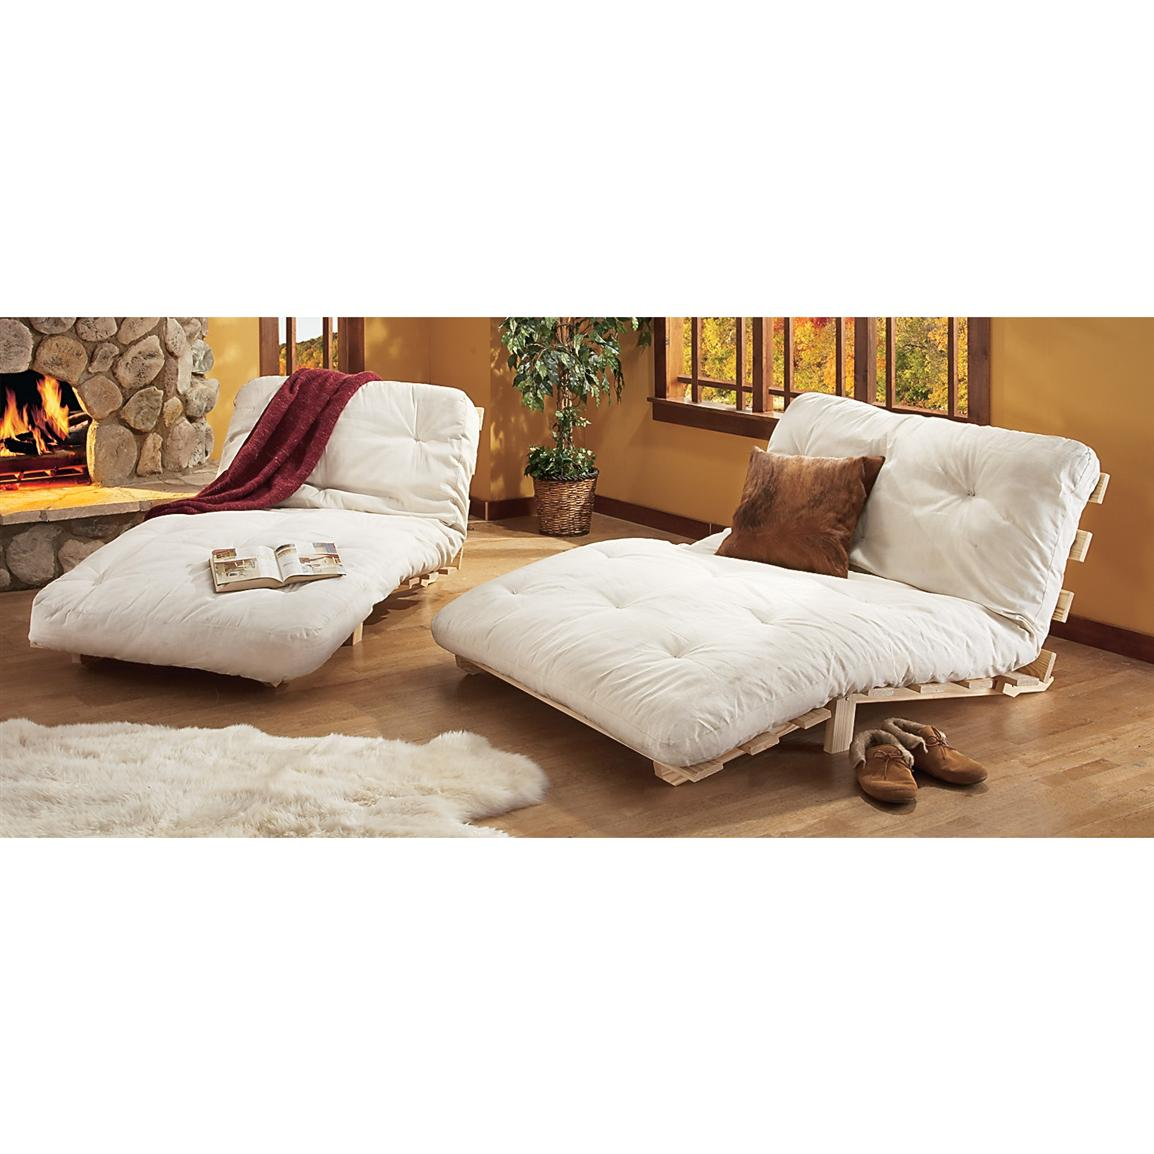 Twin Premier Futon Mattress